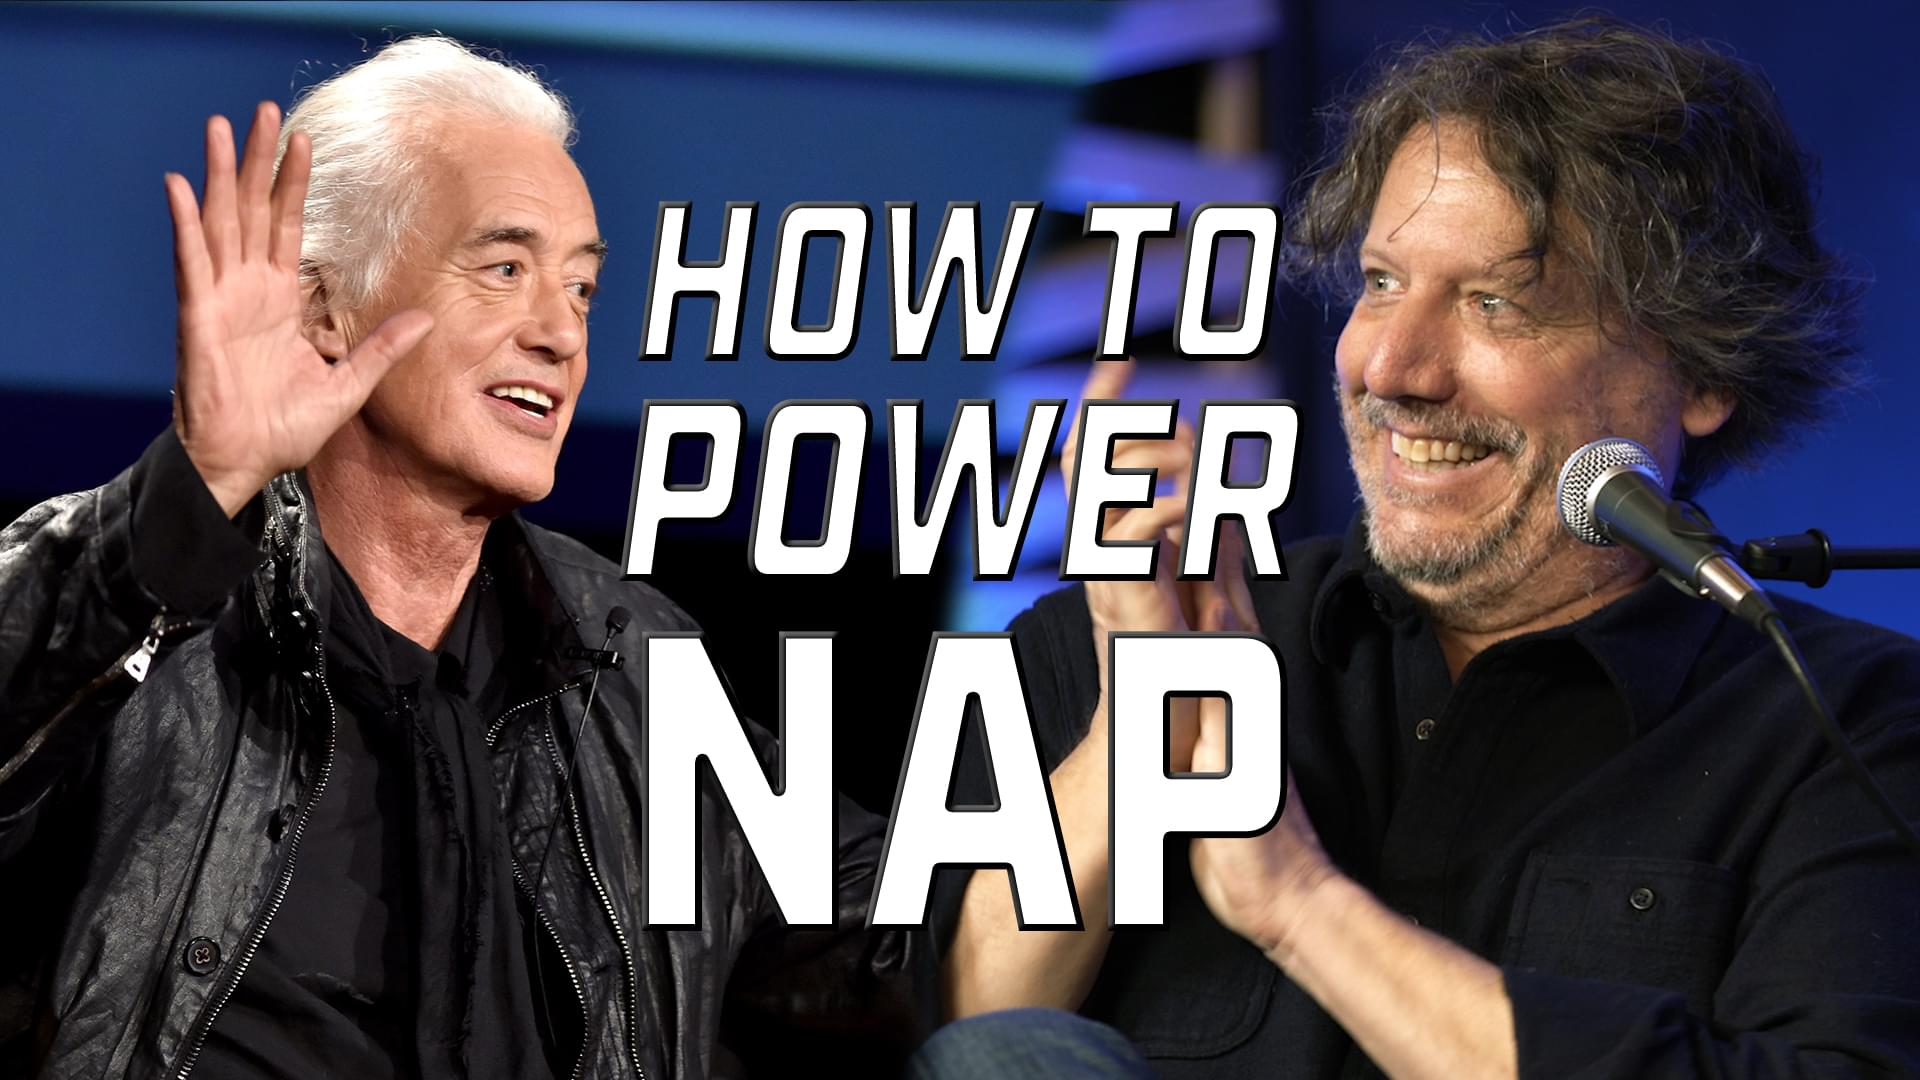 Jimmy Page learns how to power-nap: Steve Gorman's hilarious story about how he taught Page to nap